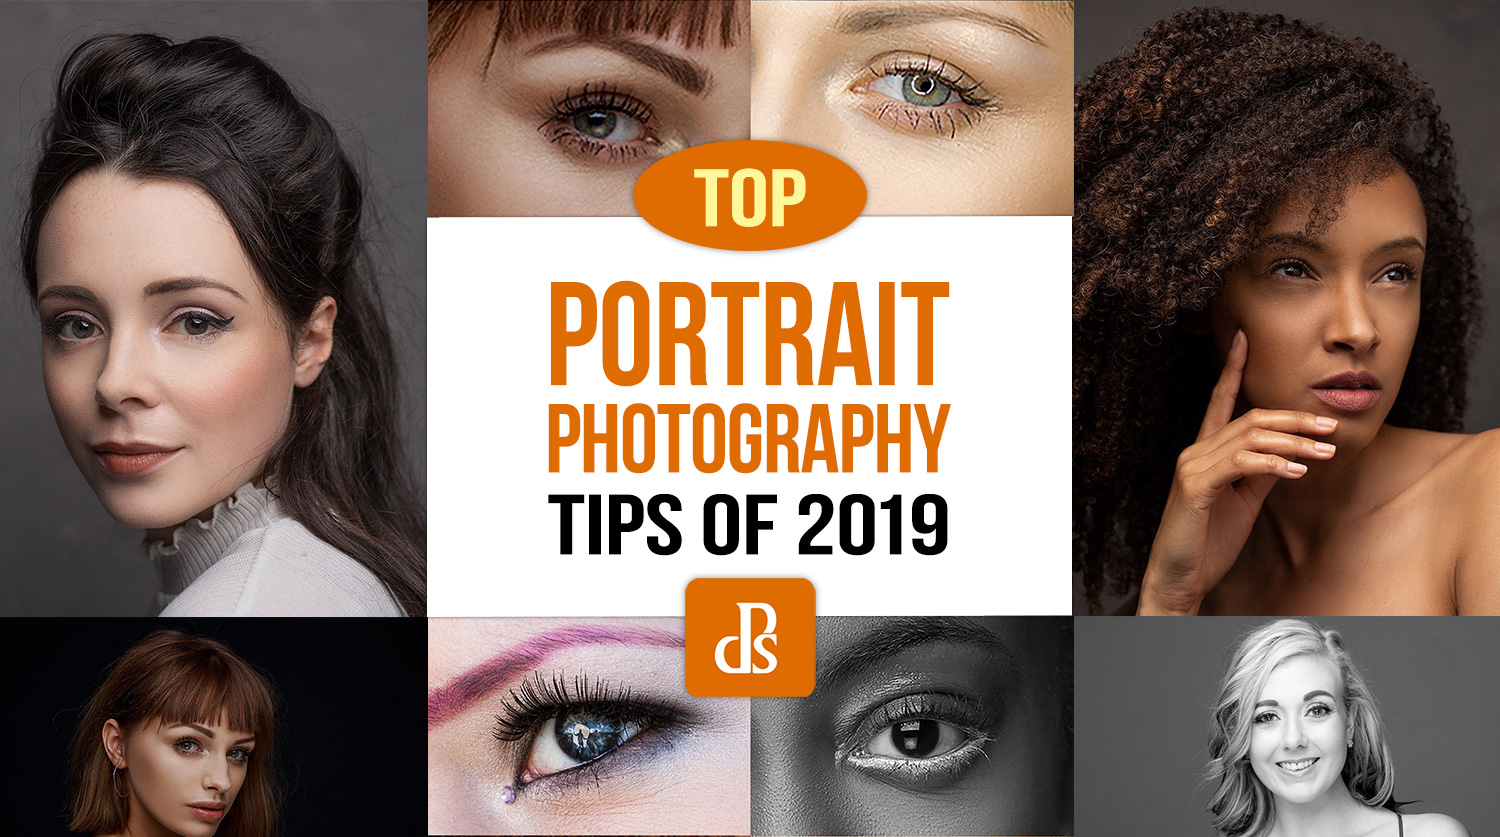 https://i0.wp.com/digital-photography-school.com/wp-content/uploads/2019/12/dps-top-portait-photography-tips-2019.jpg?resize=1500%2C837&ssl=1